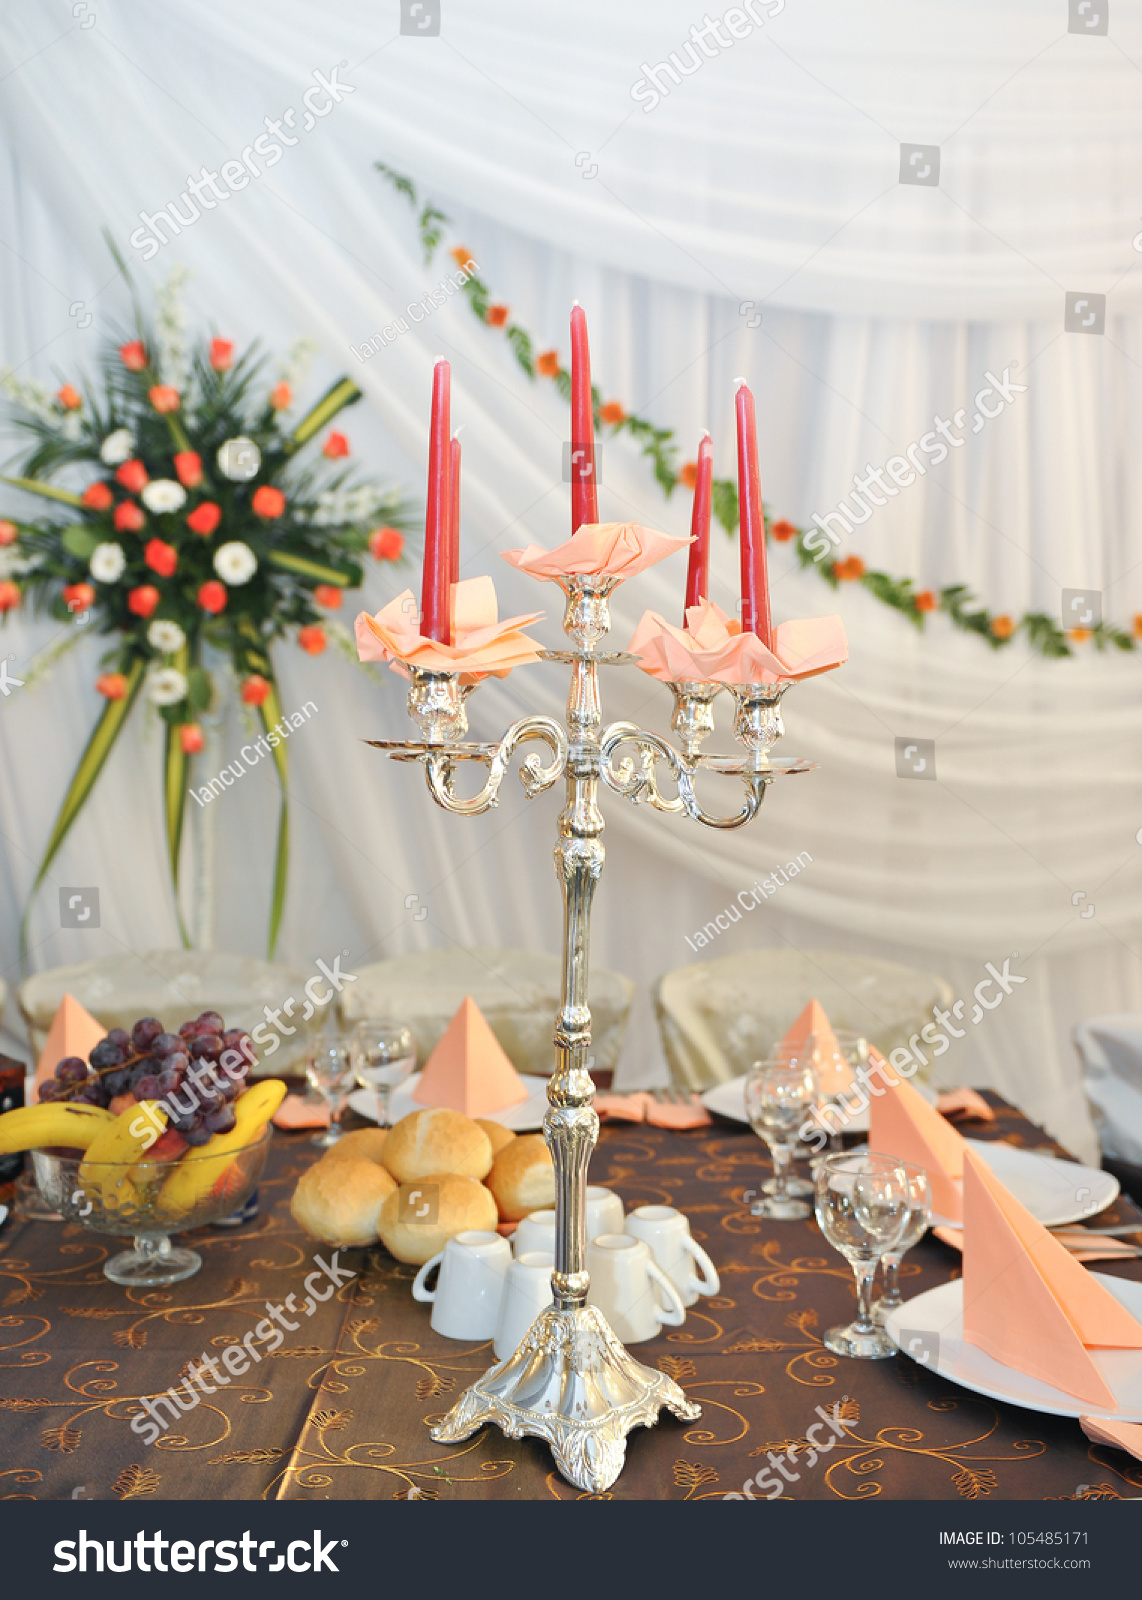 Candlestick With Candles And Floral Arrangements On Wedding Ceremony Detail